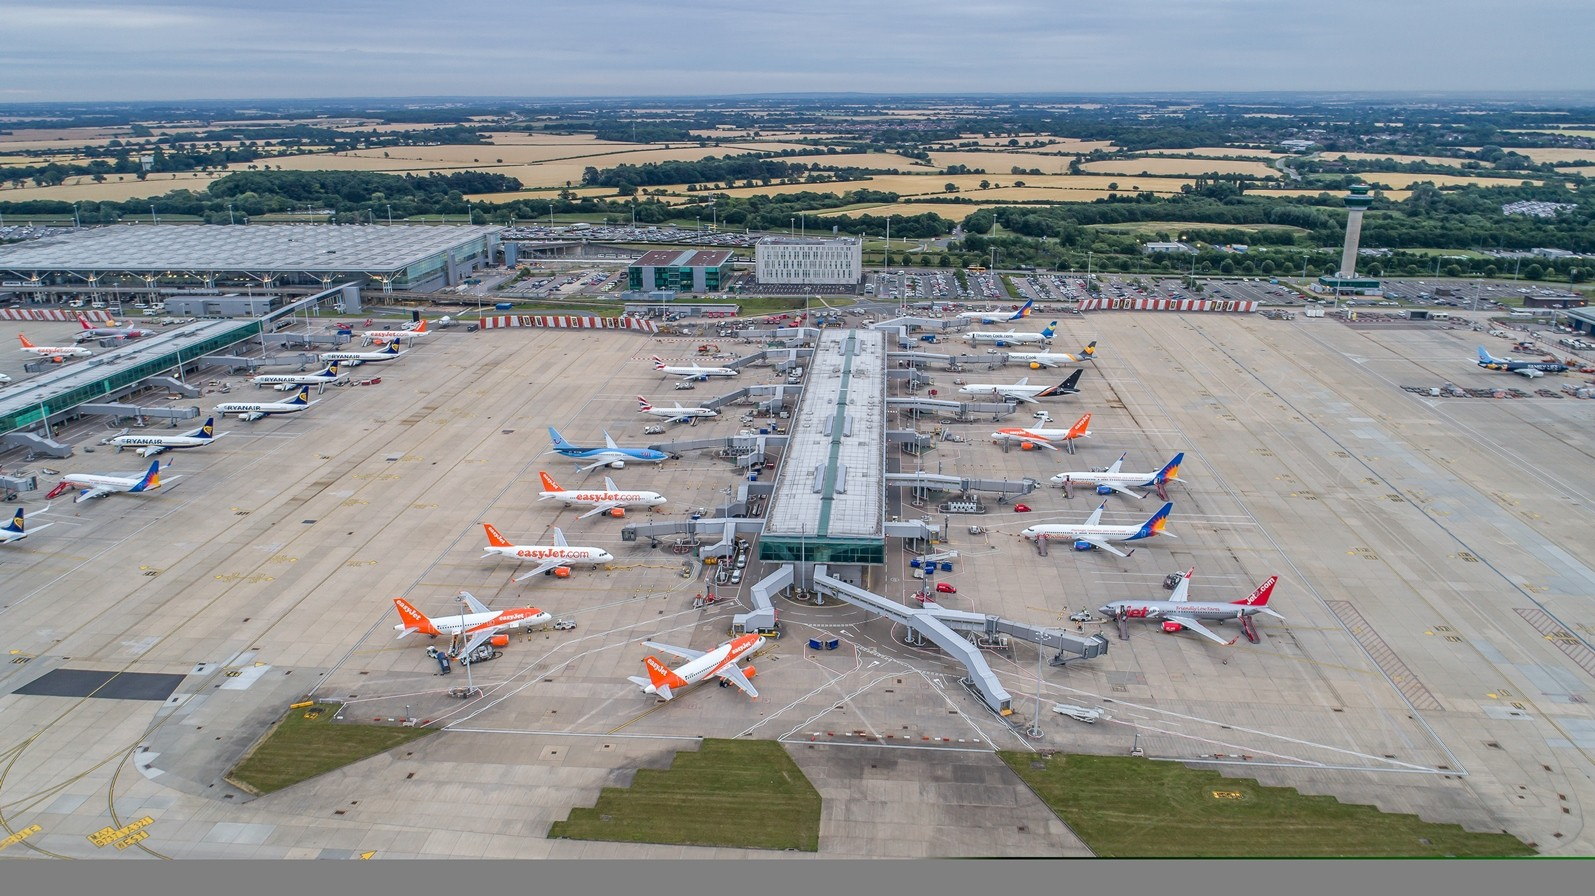 Today, Stansted employs 12,000 people and is one of the fastest growing airport's in Europe.